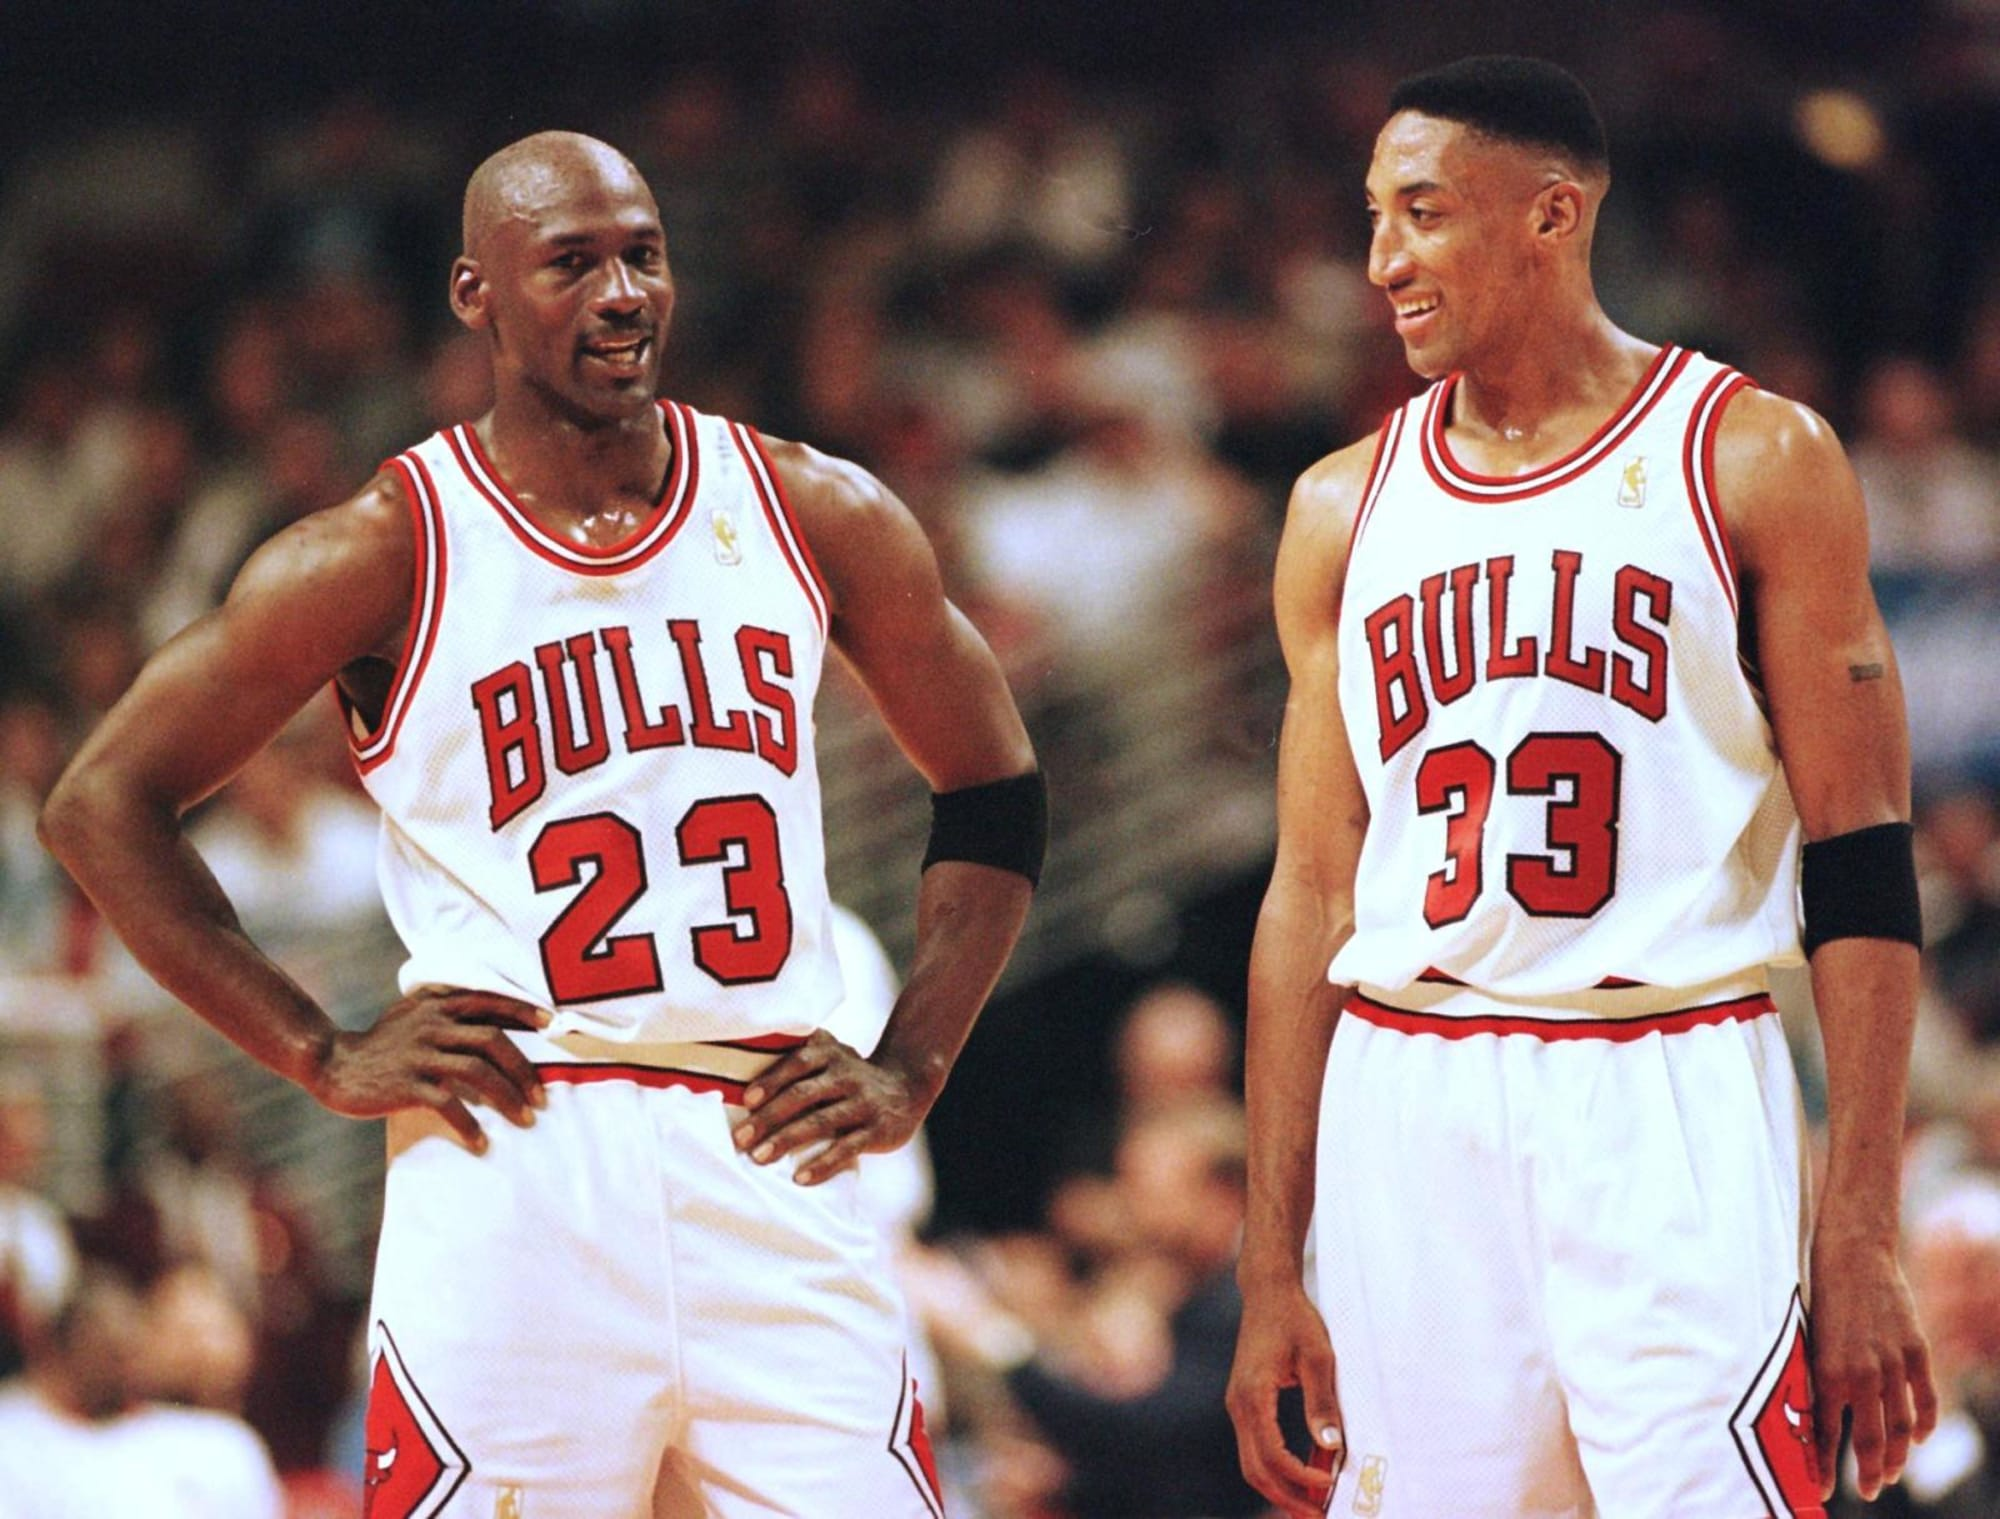 Do The 1999 Chicago Bulls Win The Title With Mj Pippen And Co